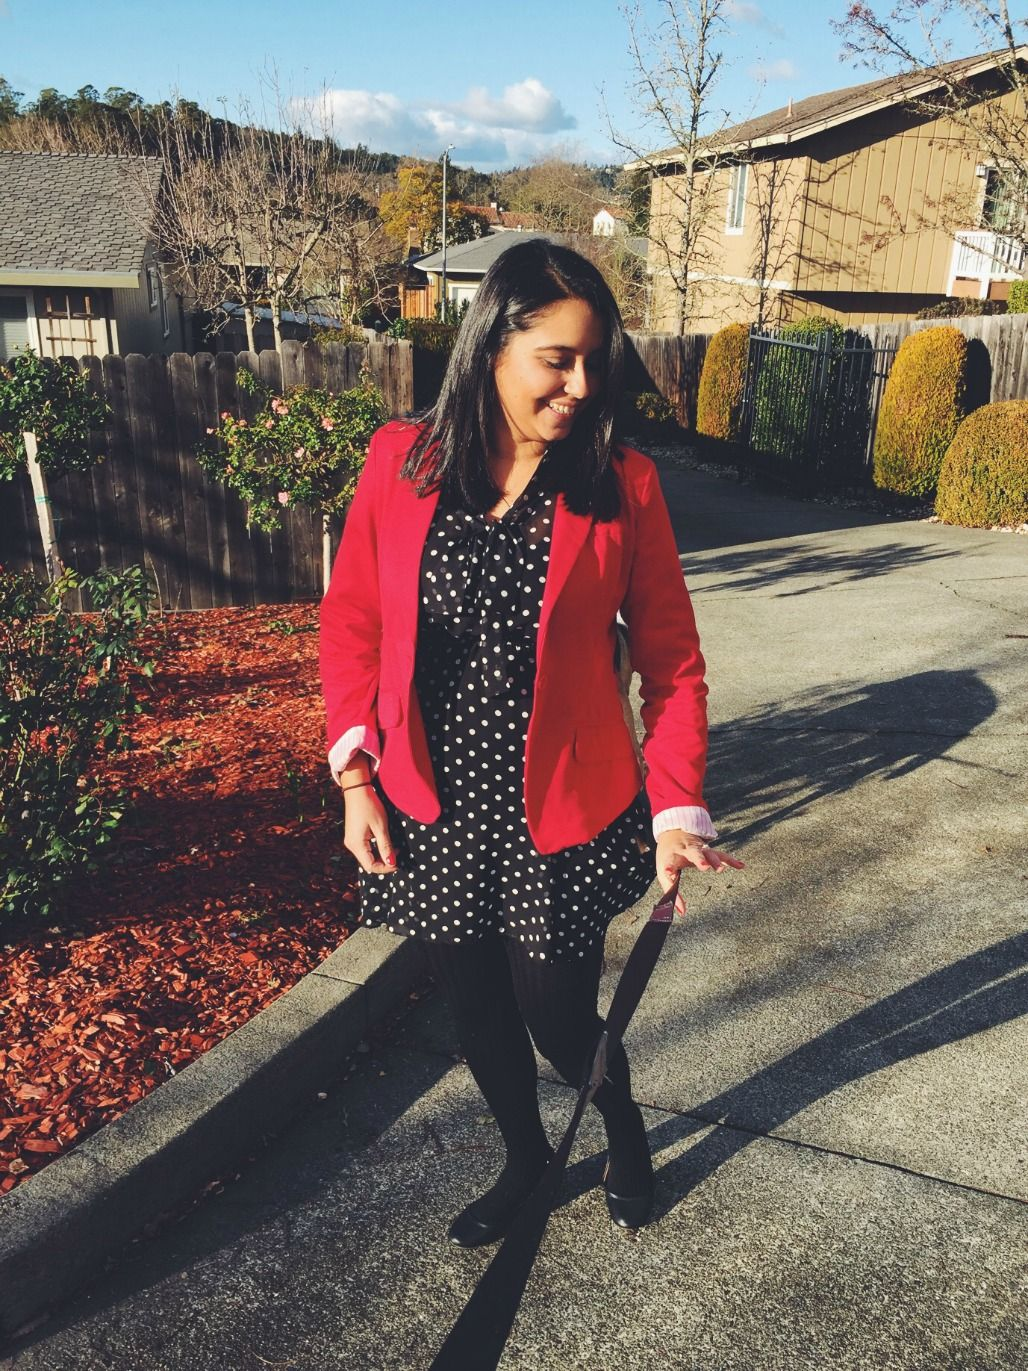 My Christmas OOTD. I decided to go with Black, White and Red. Polkadots for sure! It was comfy and elegant! ;) Check out the blog!